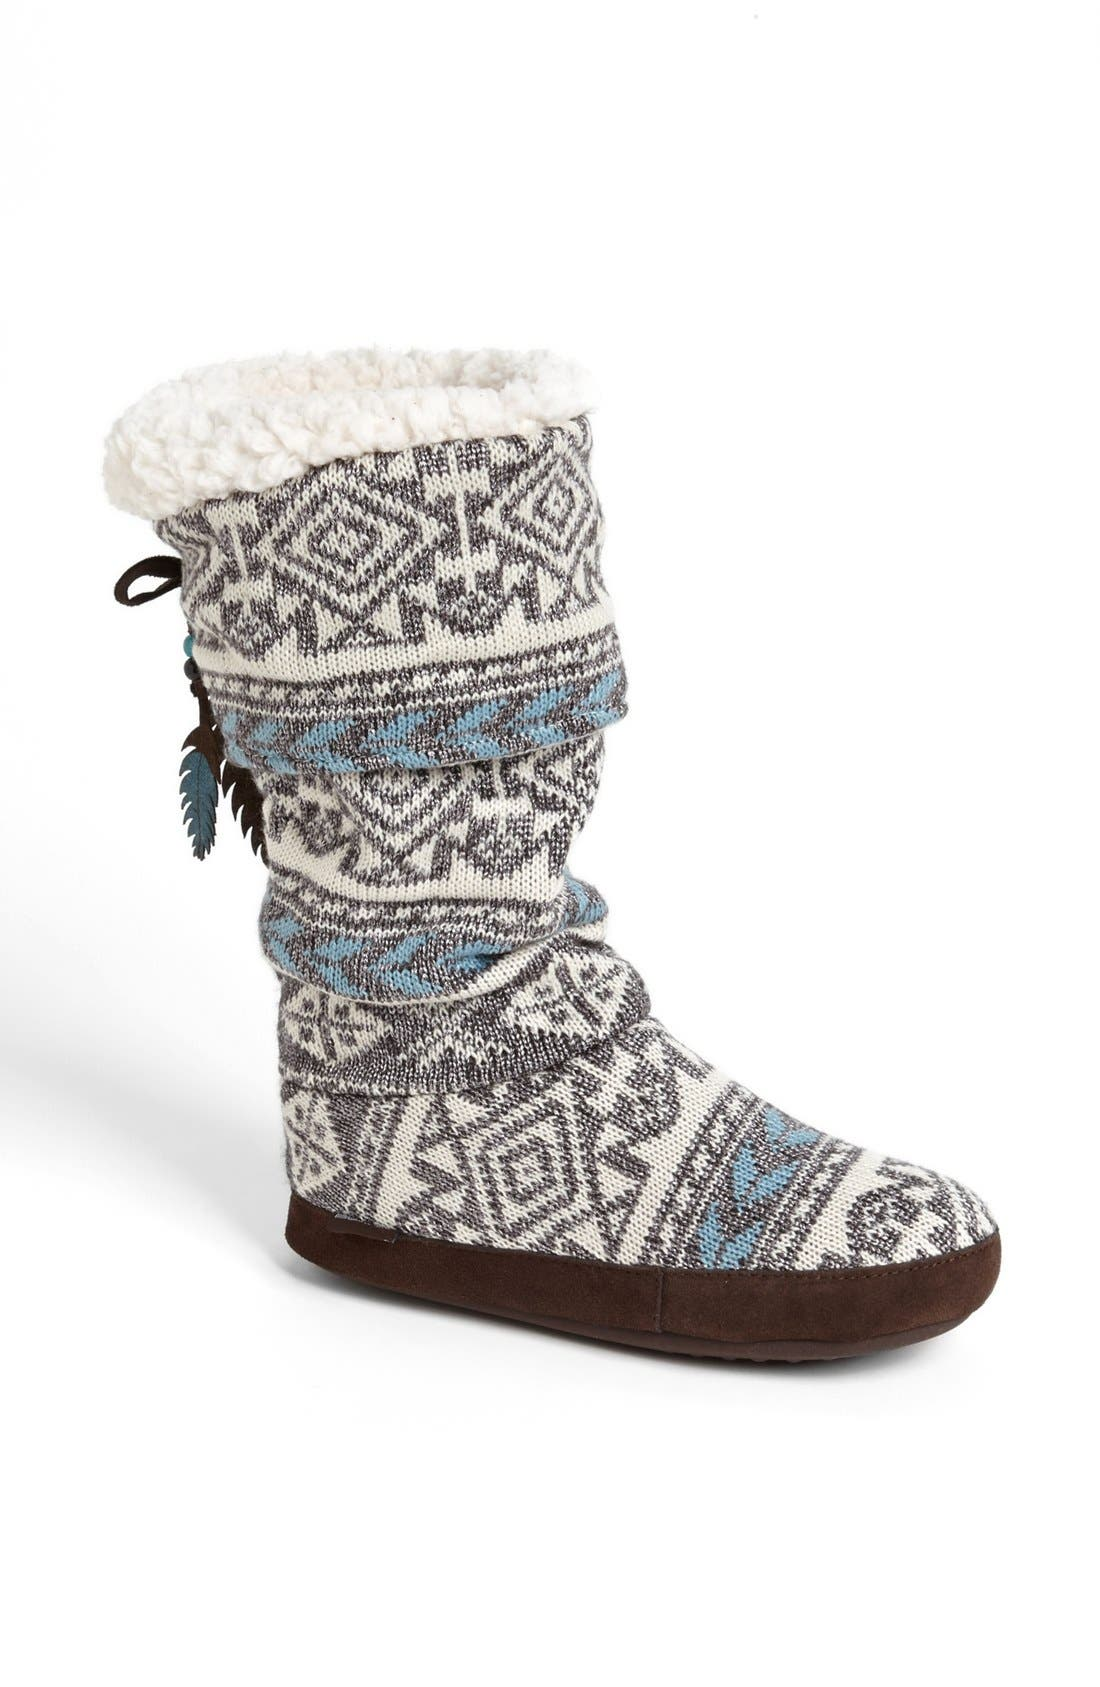 Main Image - MUK LUKS 'Winona' Tall Slipper